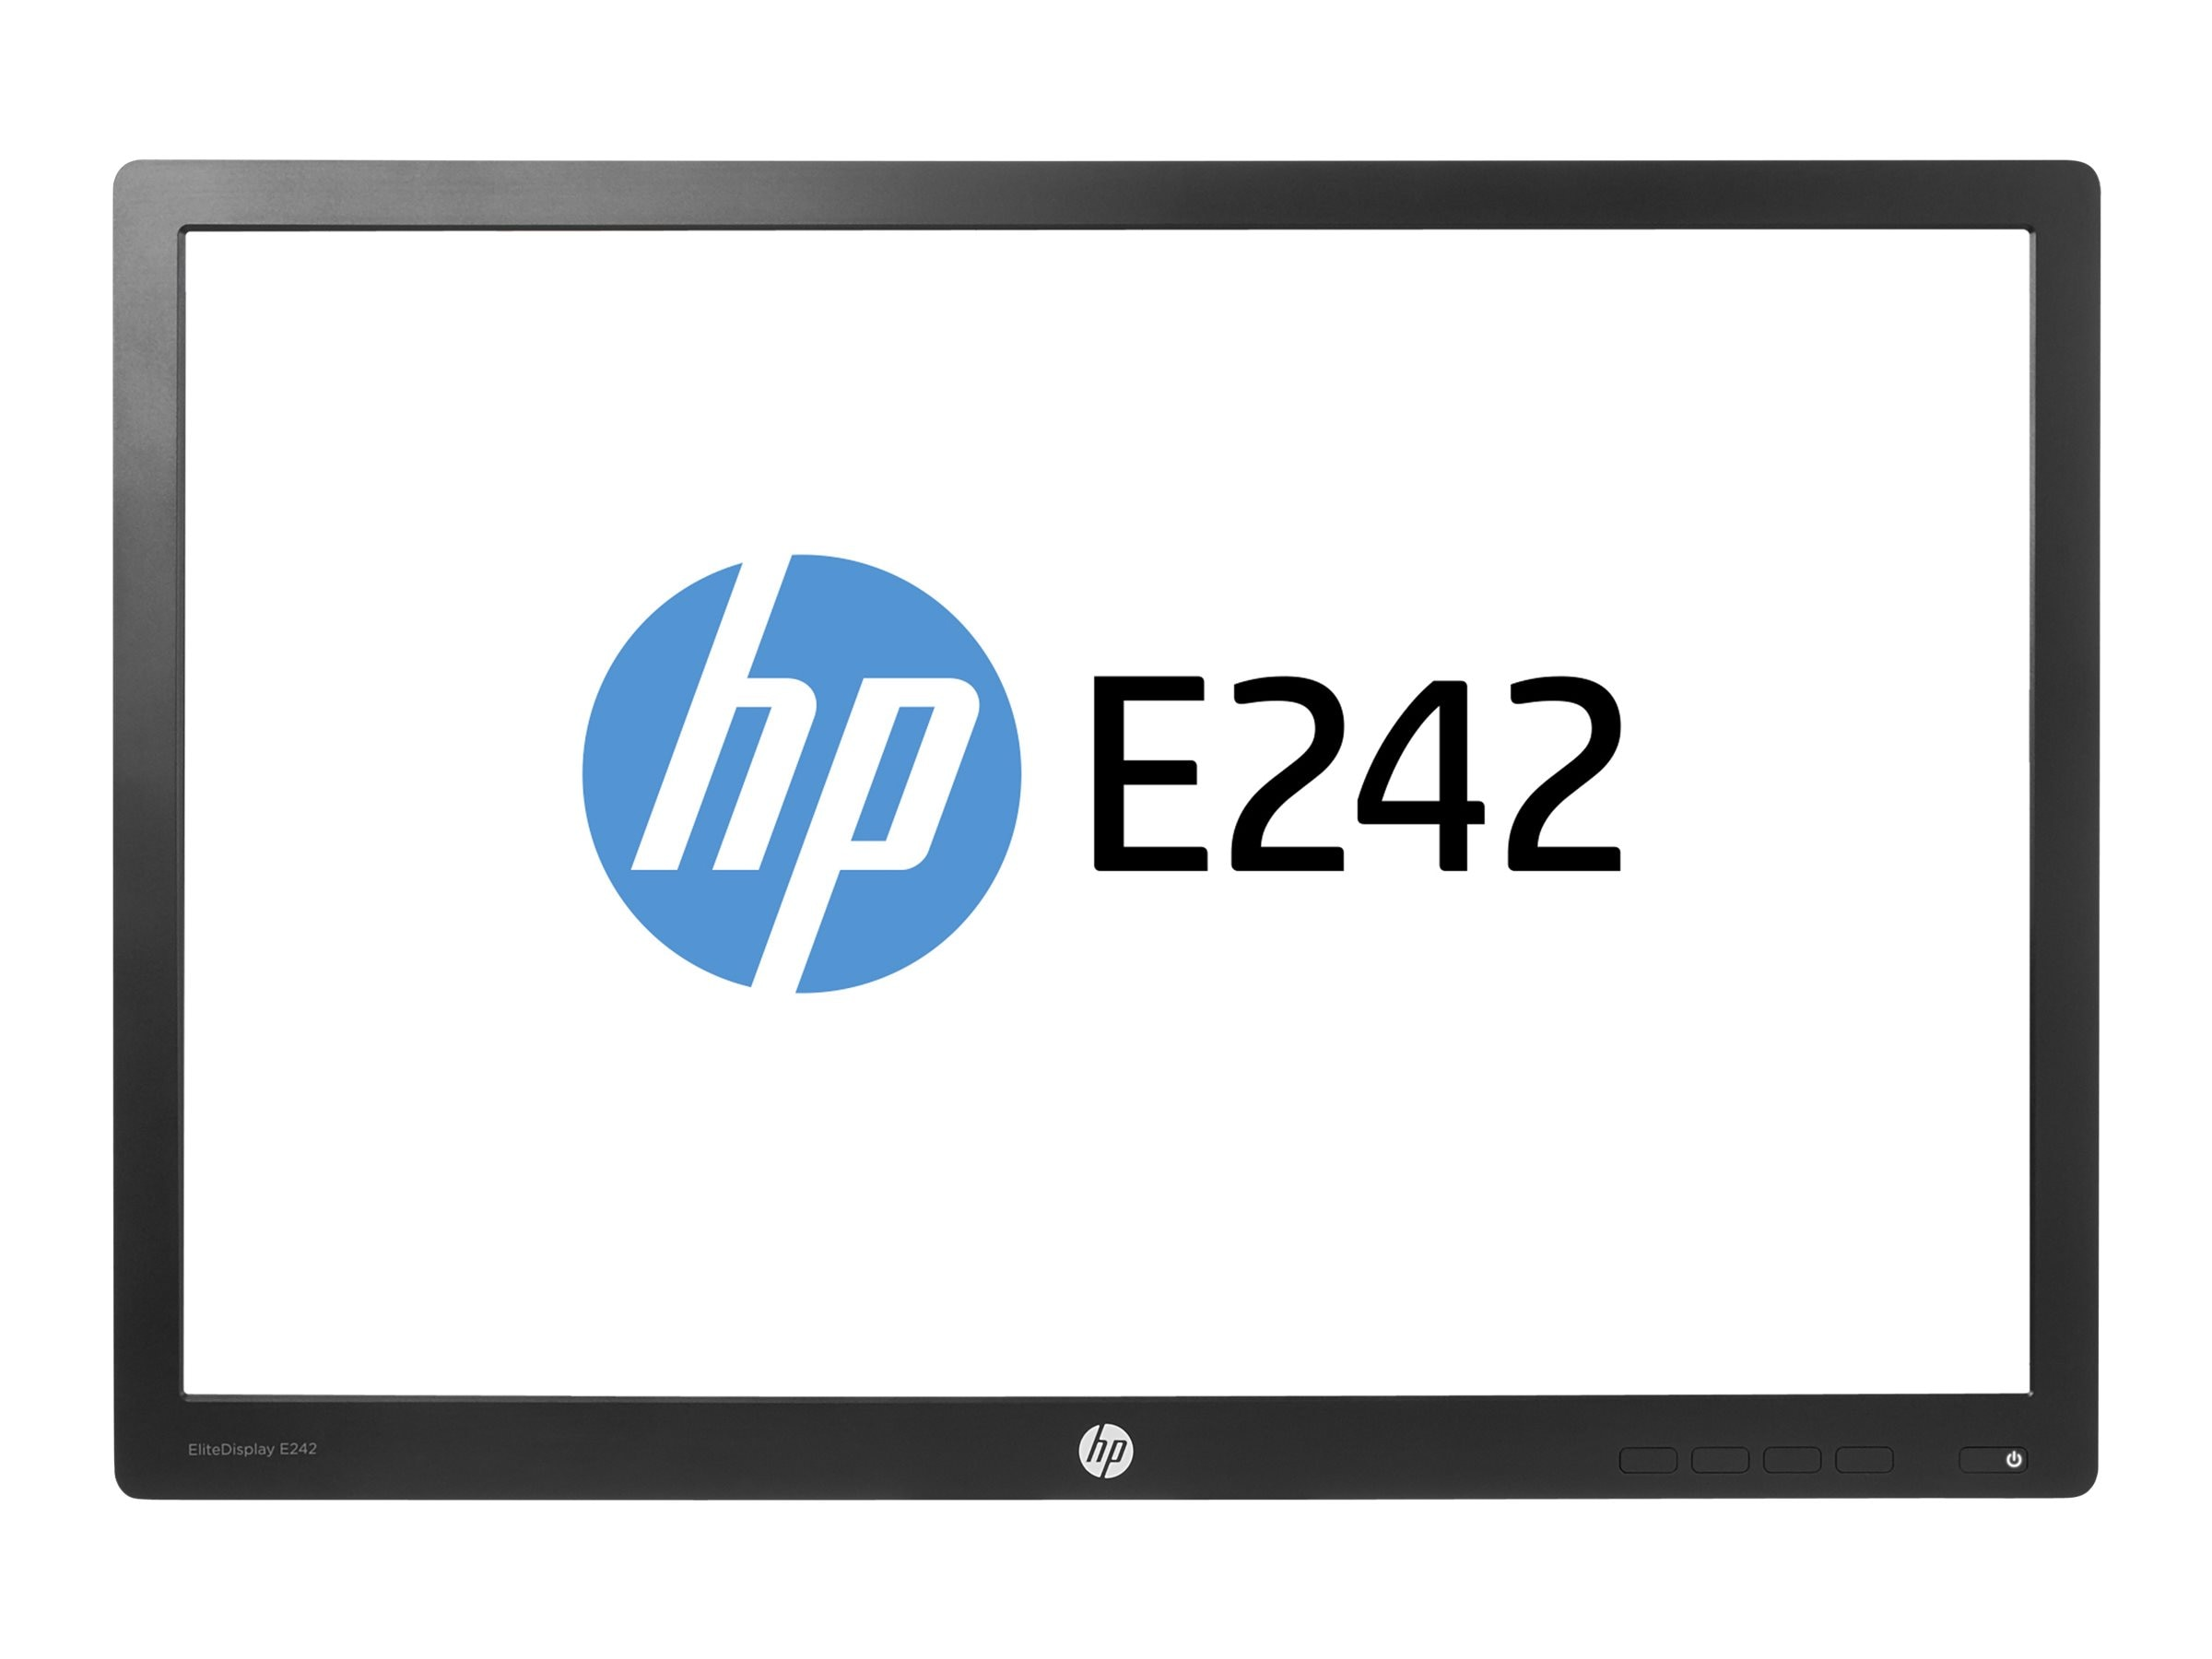 HP 24 E242 Full HD LED-LCD Monitor, Black (Head Only)